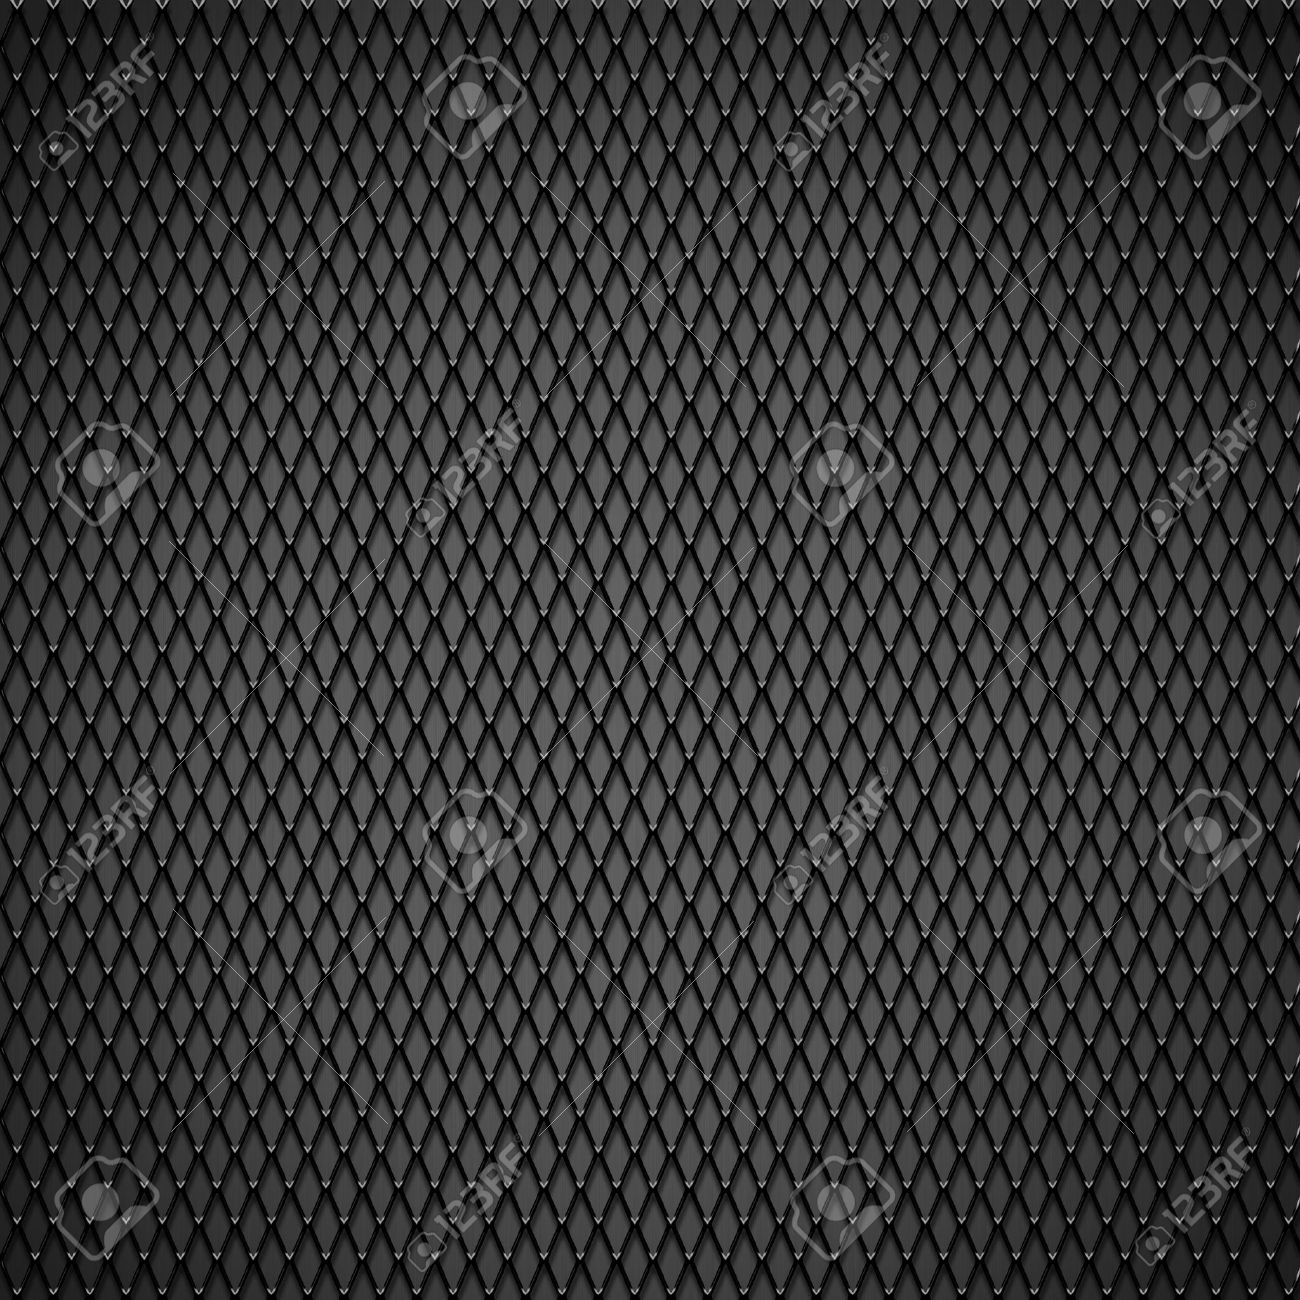 Metal Wire Mesh, Black And Gray Stock Photo, Picture And Royalty ...